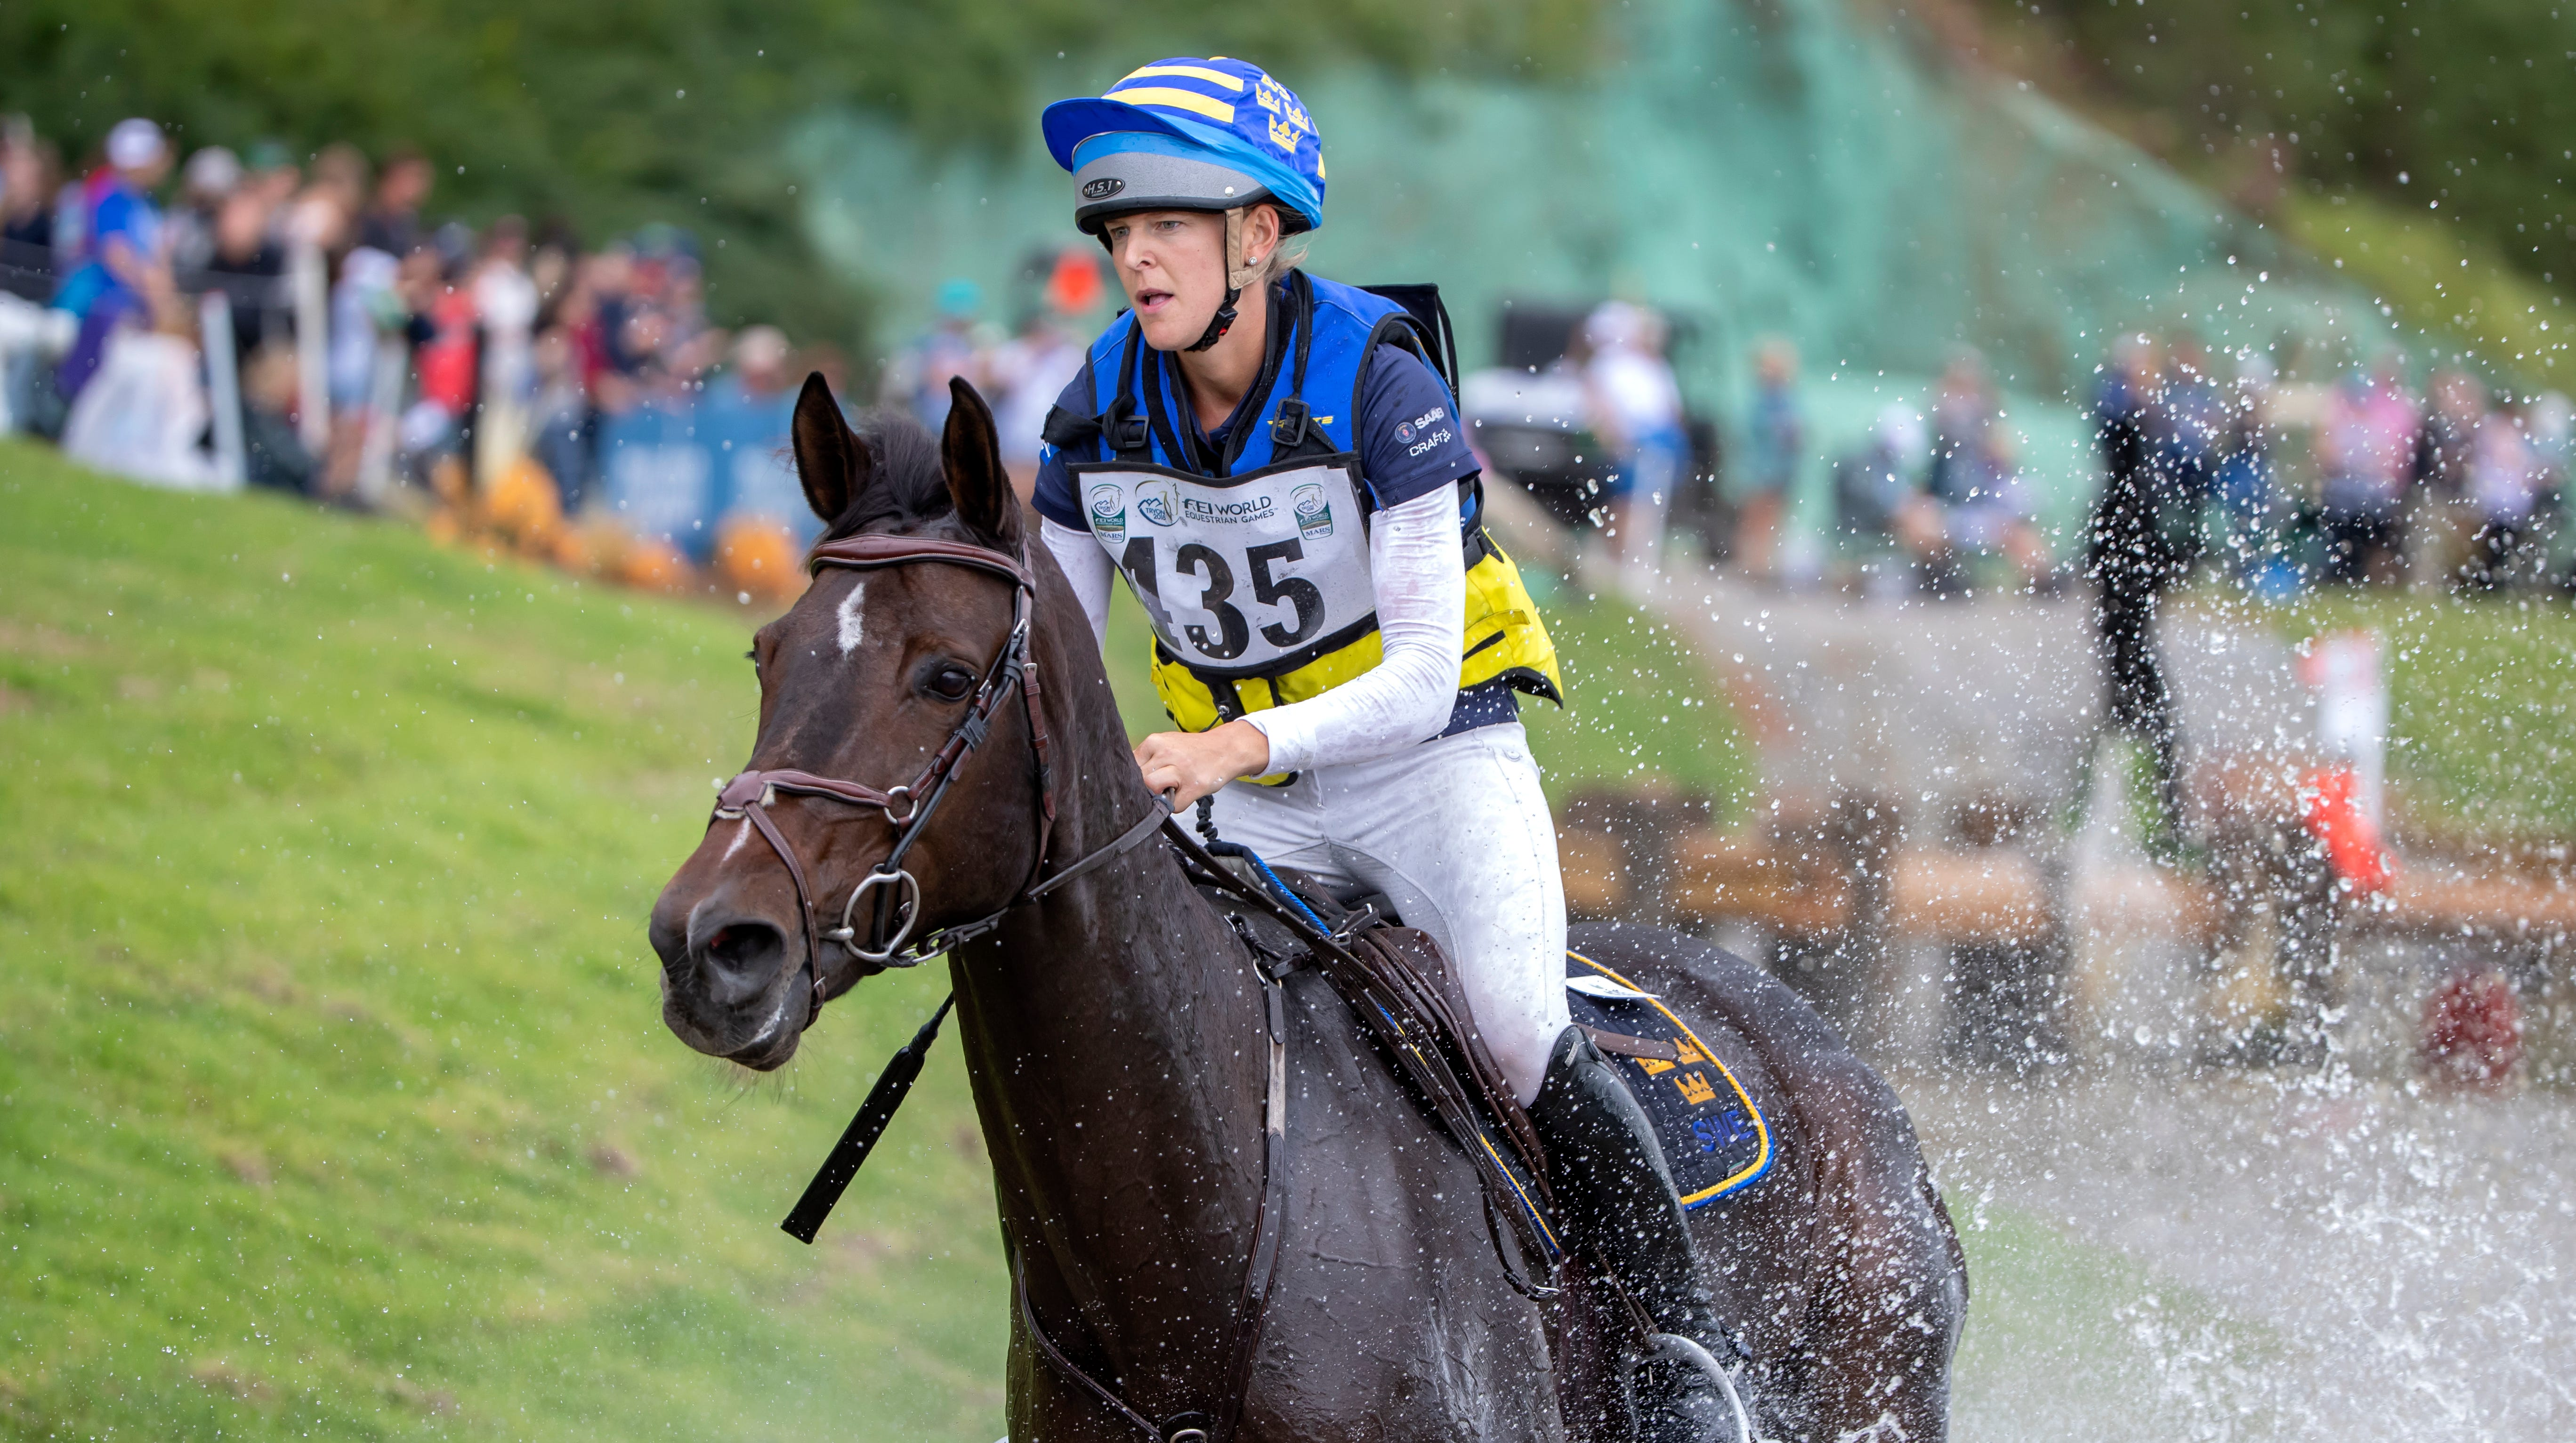 Injured horse euthanized at World Equestrian Games in Tryon